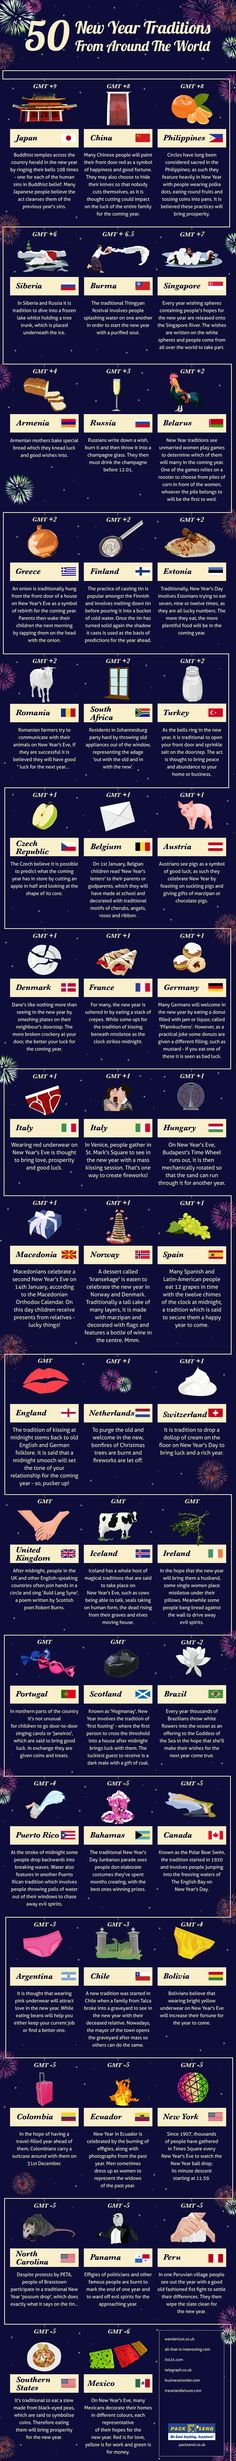 50 New Year Traditions From Around The World - infographic